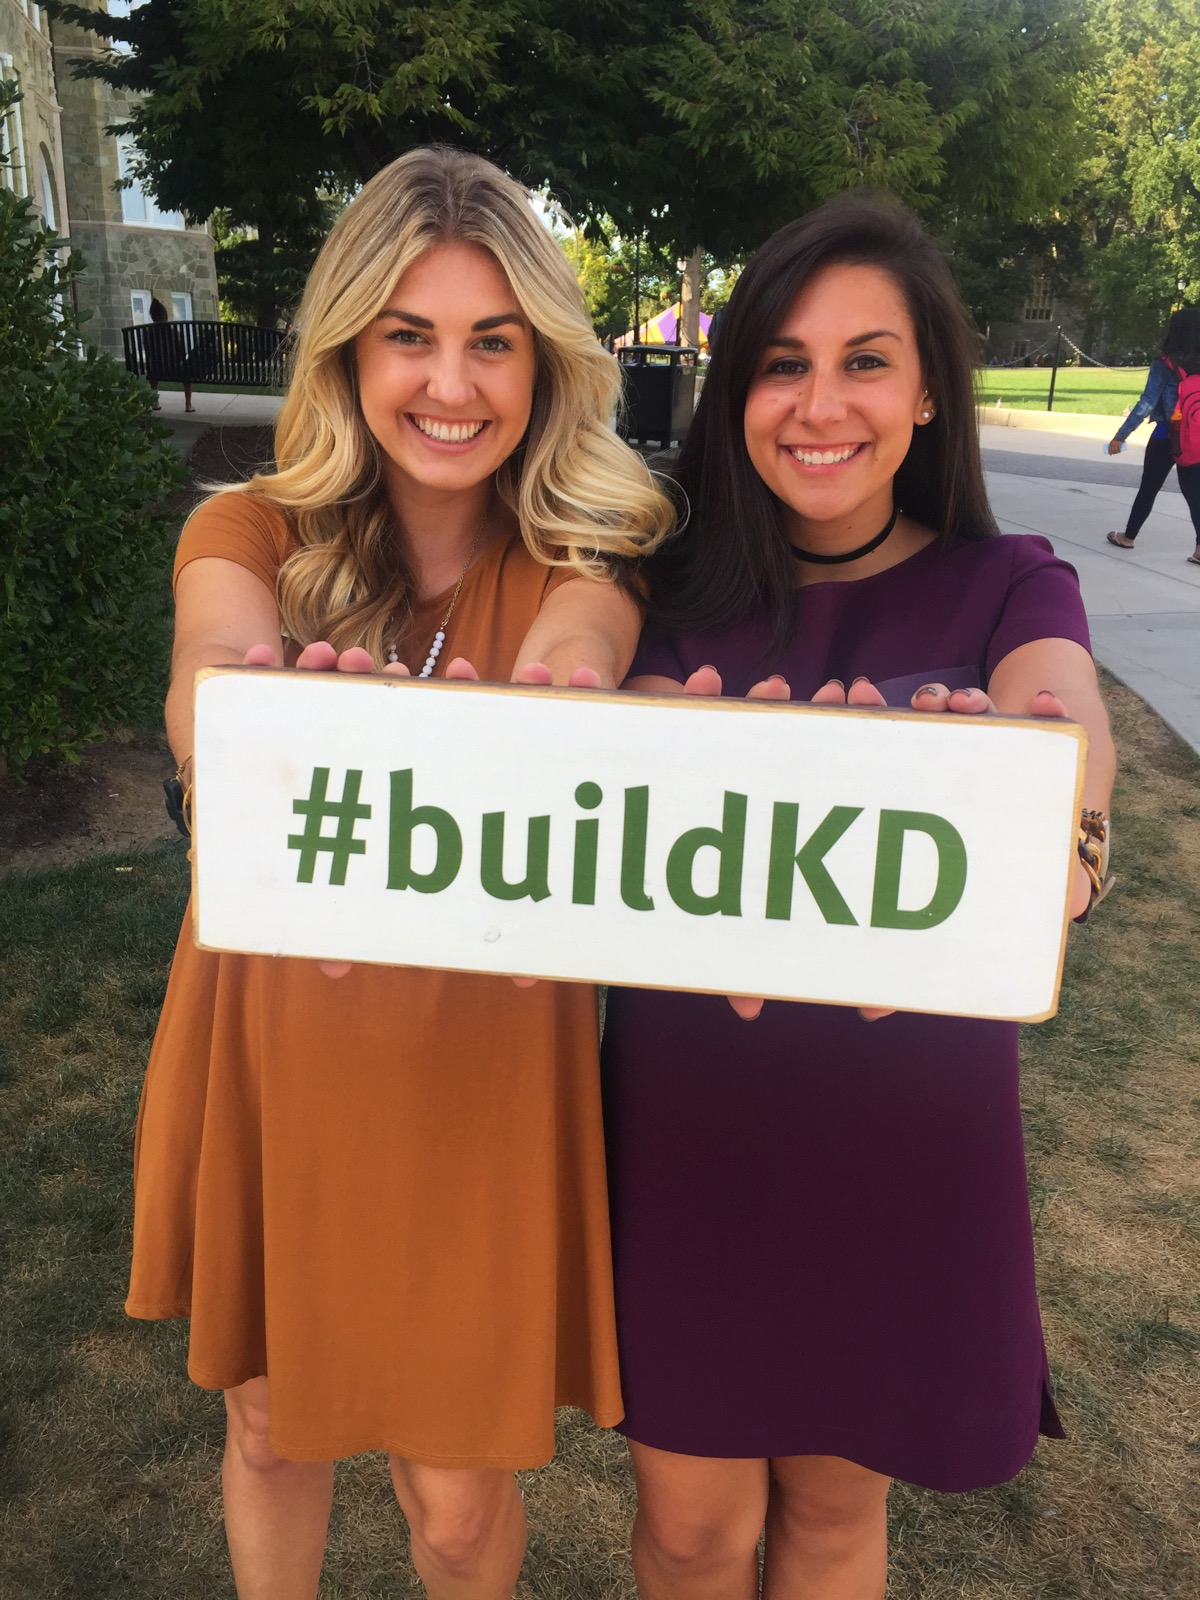 leadership development consultant build KD sign